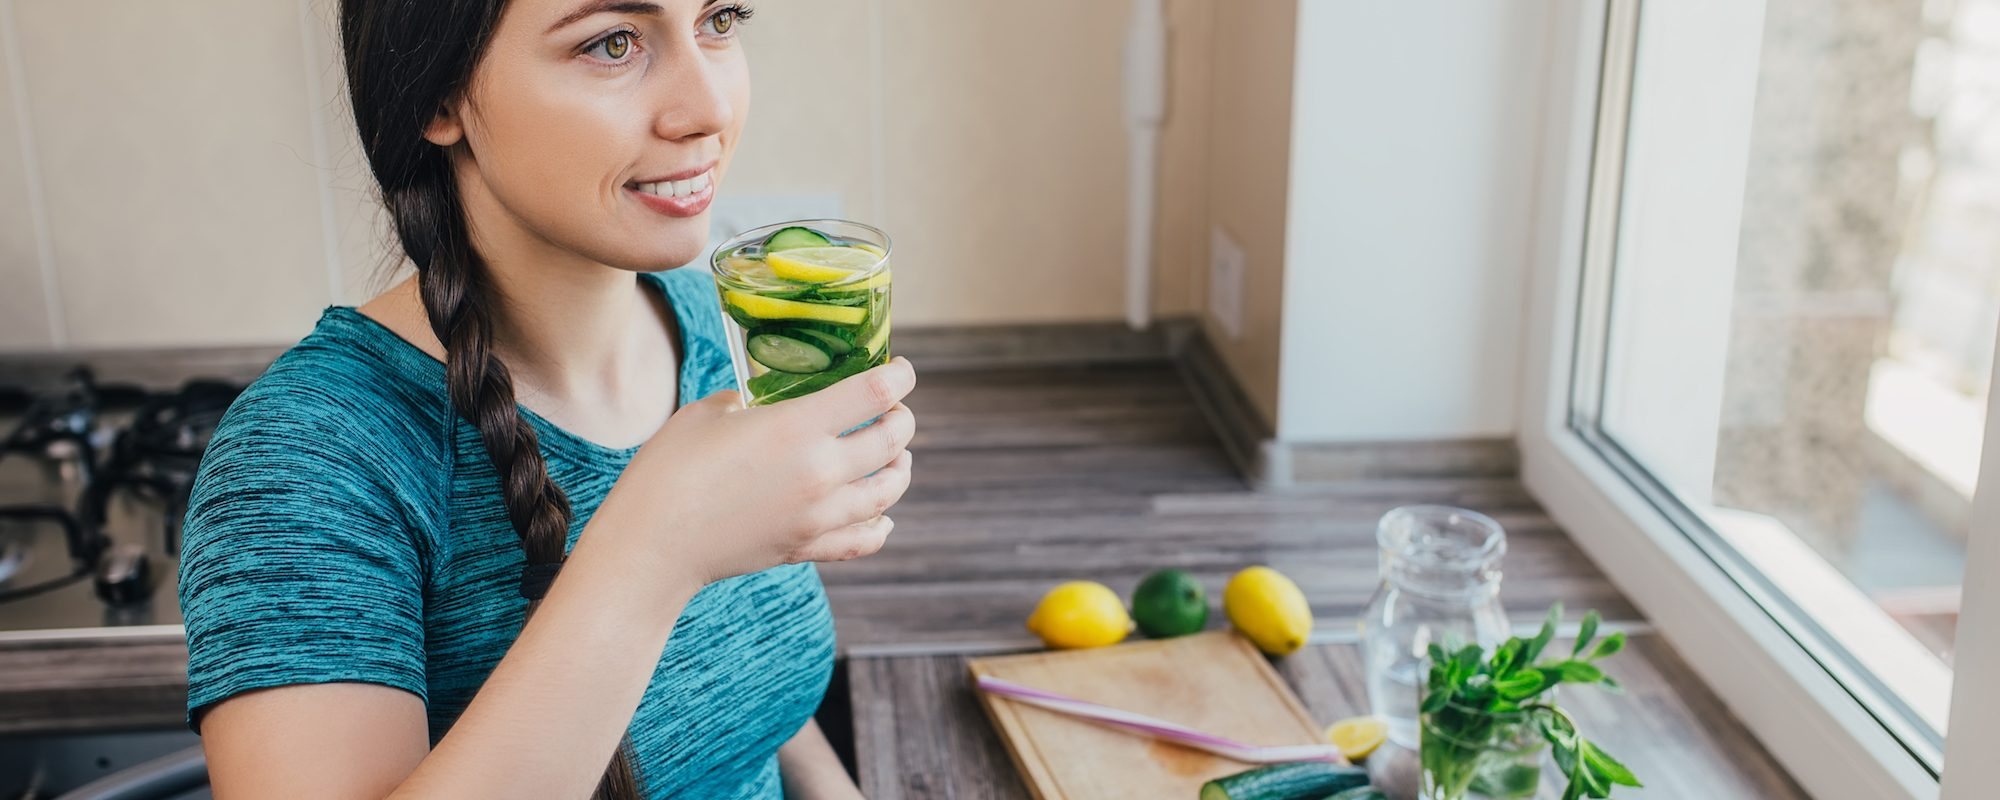 10 Benefits of Staying Hydrated